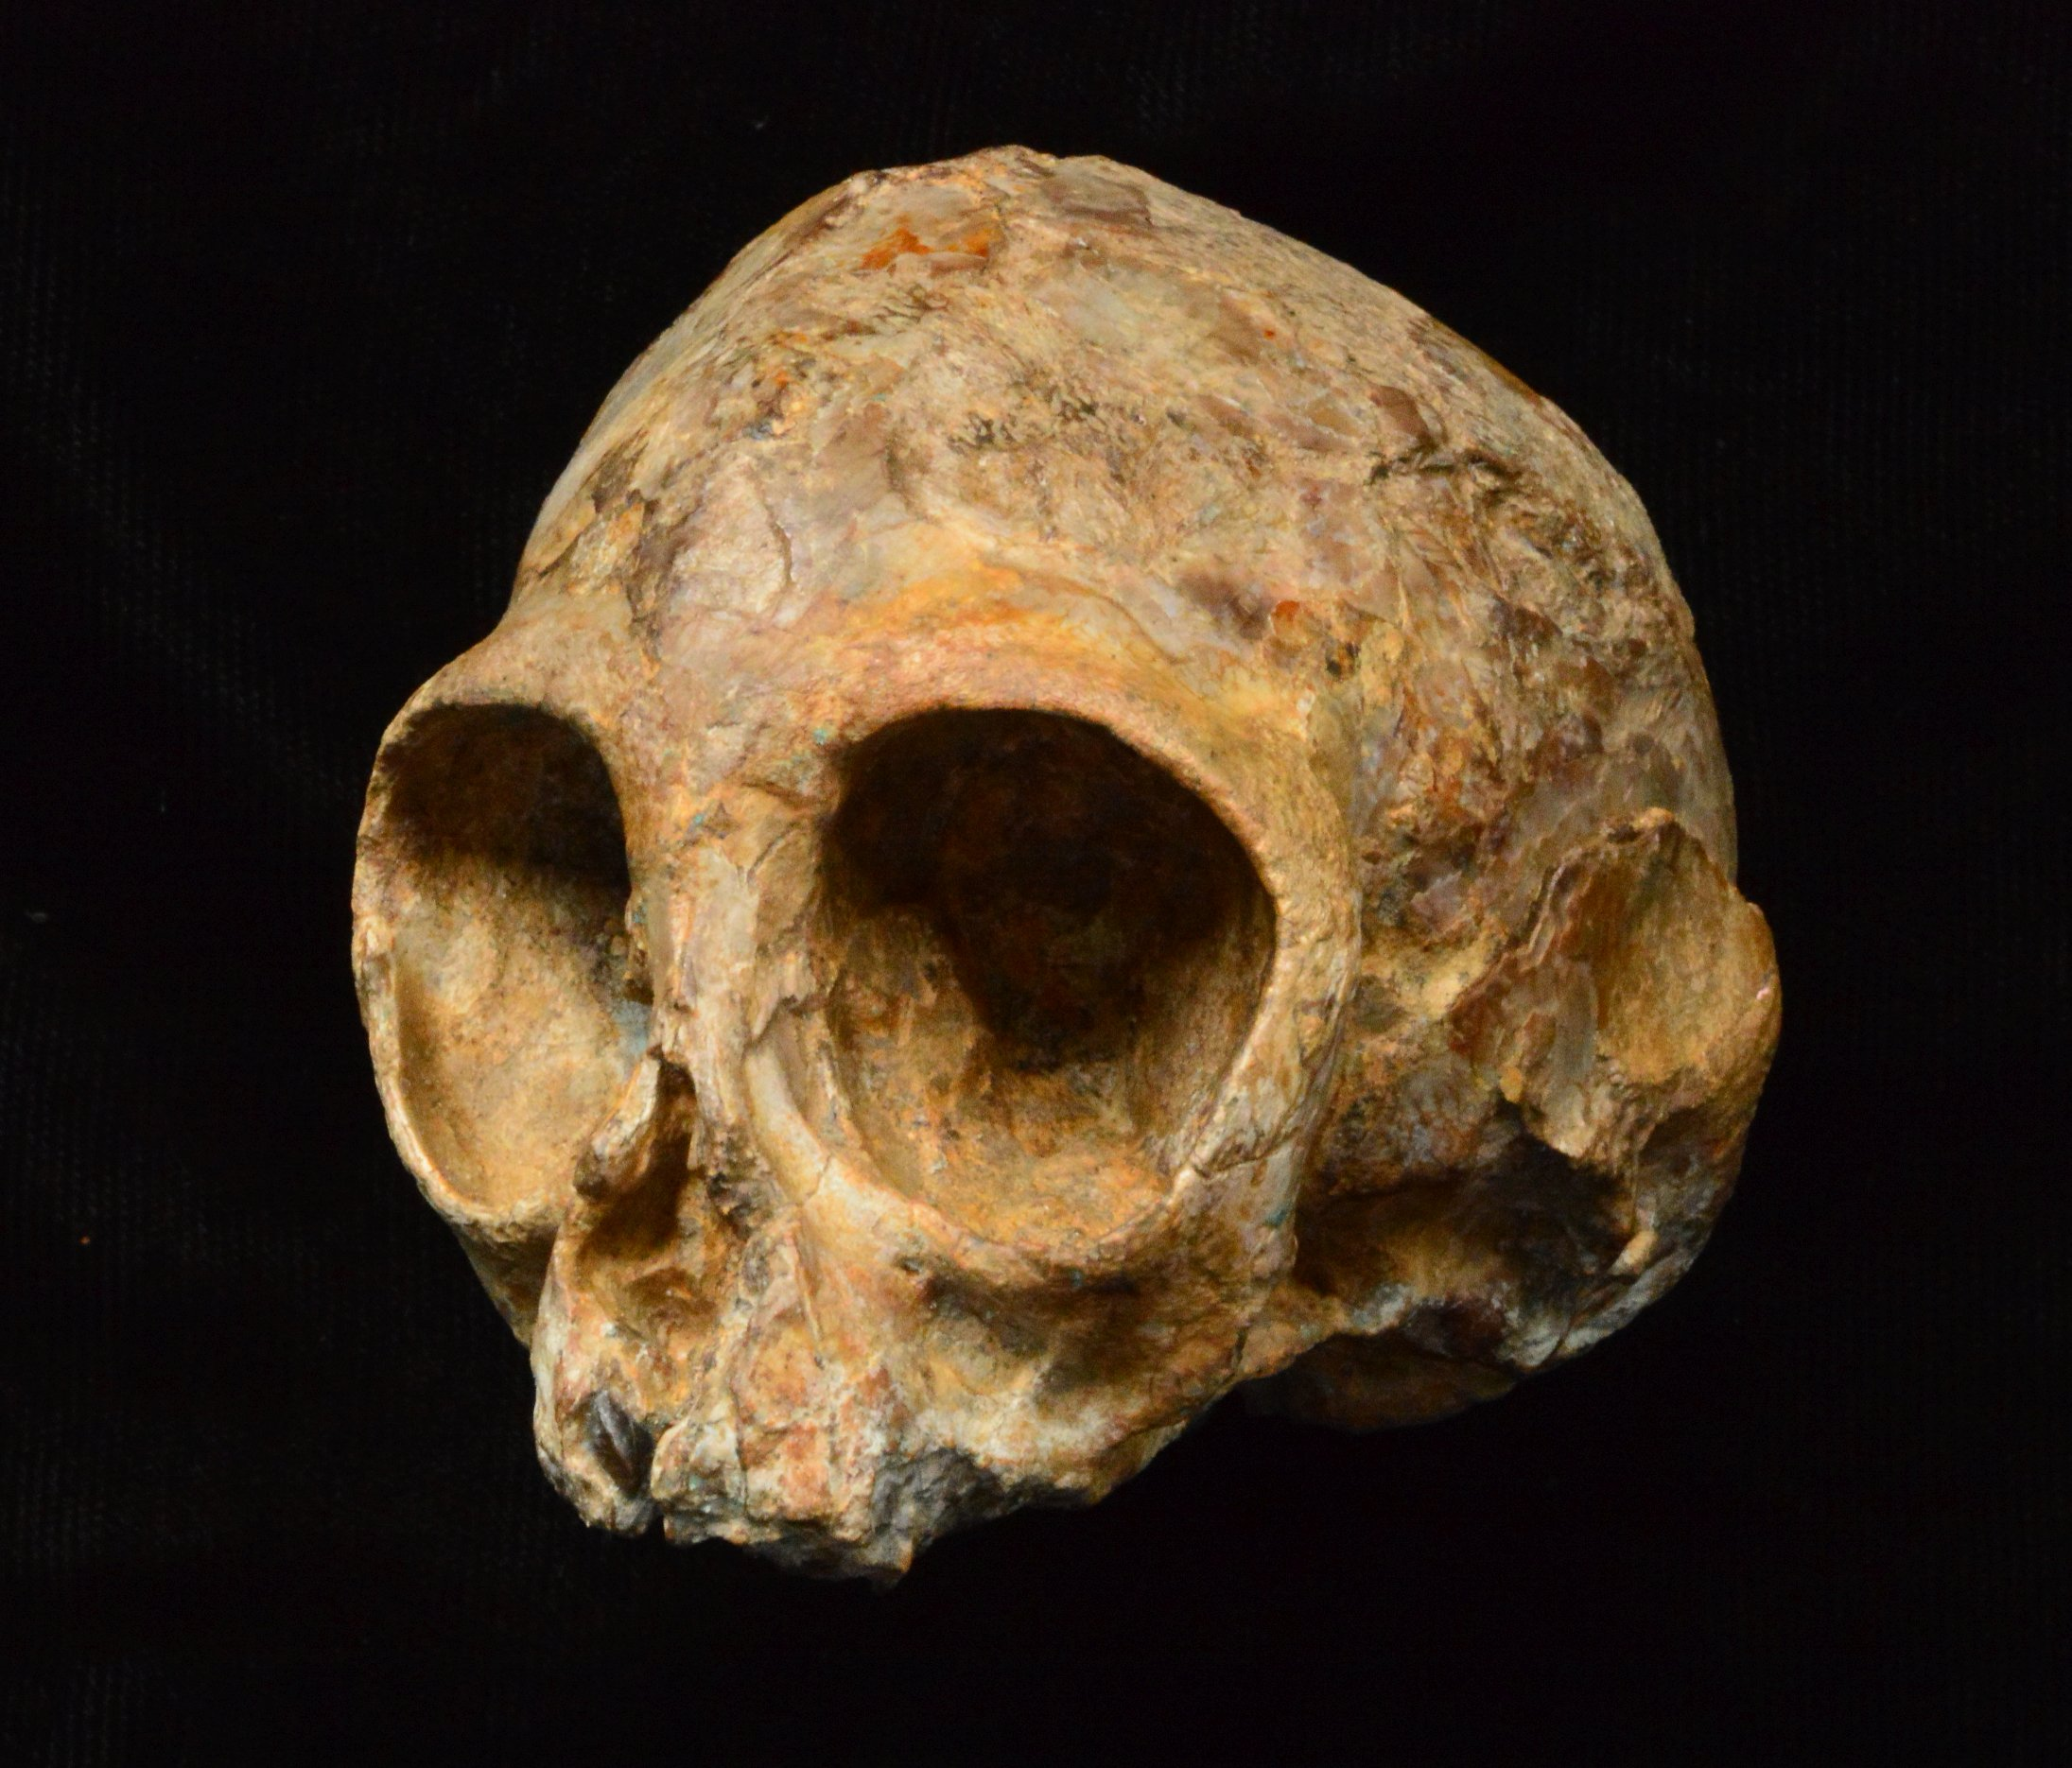 South Bay Professor Finds 13 Million Year Old Ape Skull